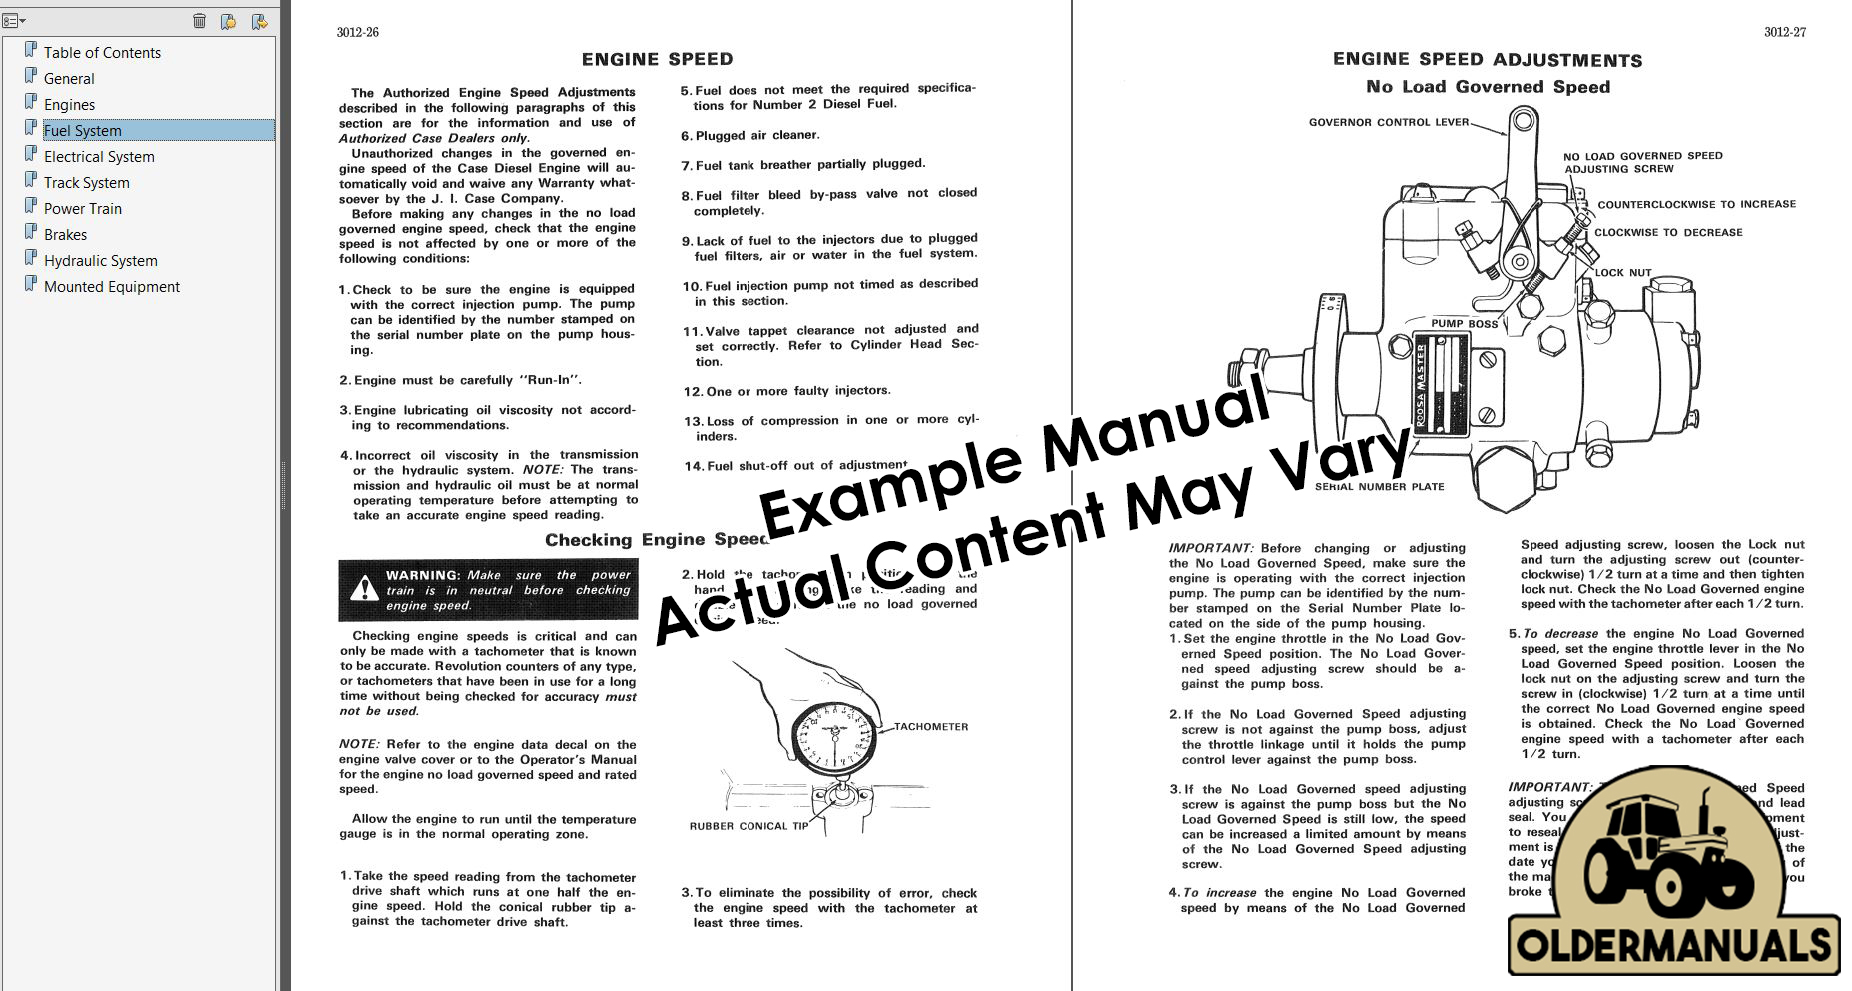 example from one of our manuals (actual manual contents may vary):